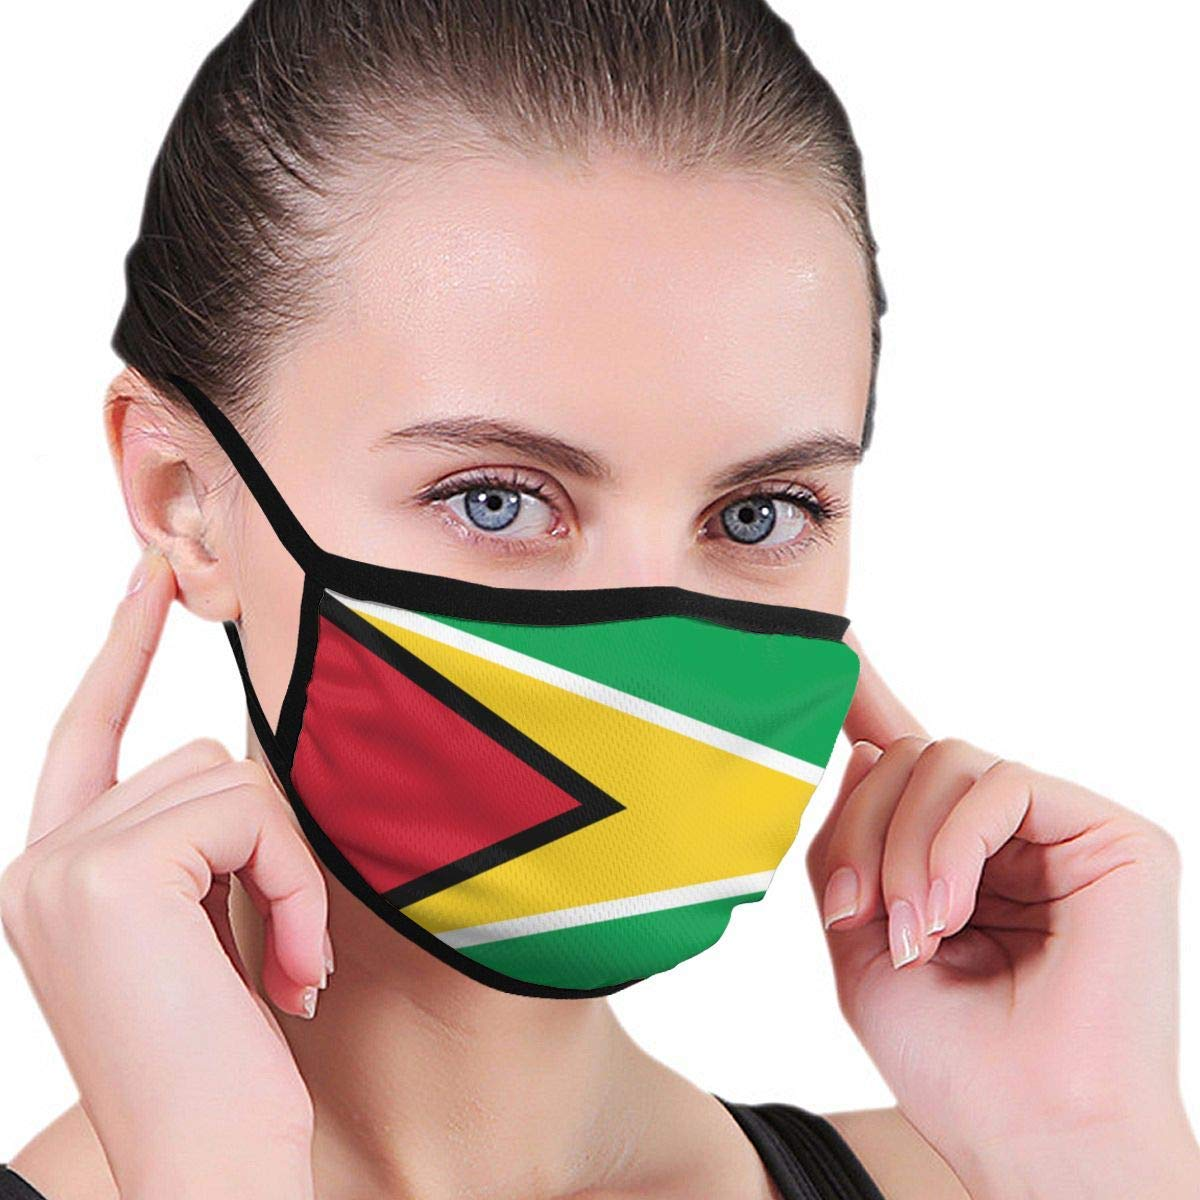 Bdwuhs Mascarillas Bucales Guyana Flag Washable Reusable Mouth Mask Cotton Anti Dust Half Face Mouth Mask For Men Women Dustproof with Adjustable Ear Loops